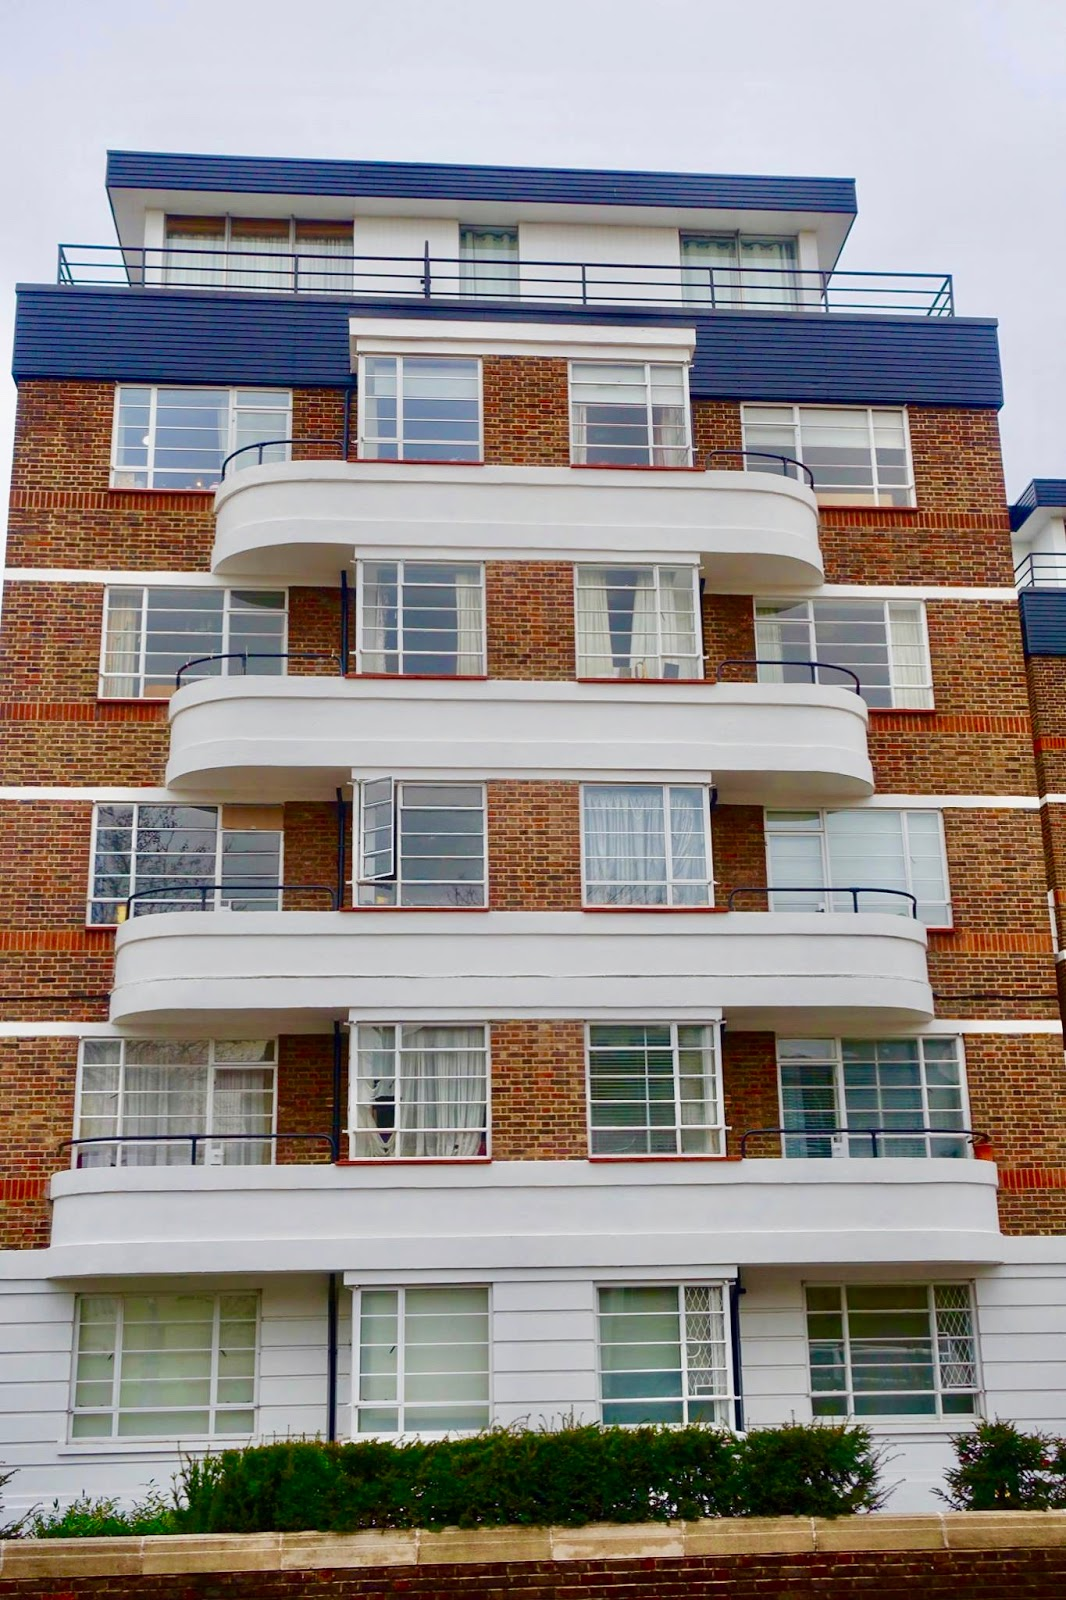 adrian yekkes picture post 67 hightrees house classic art deco